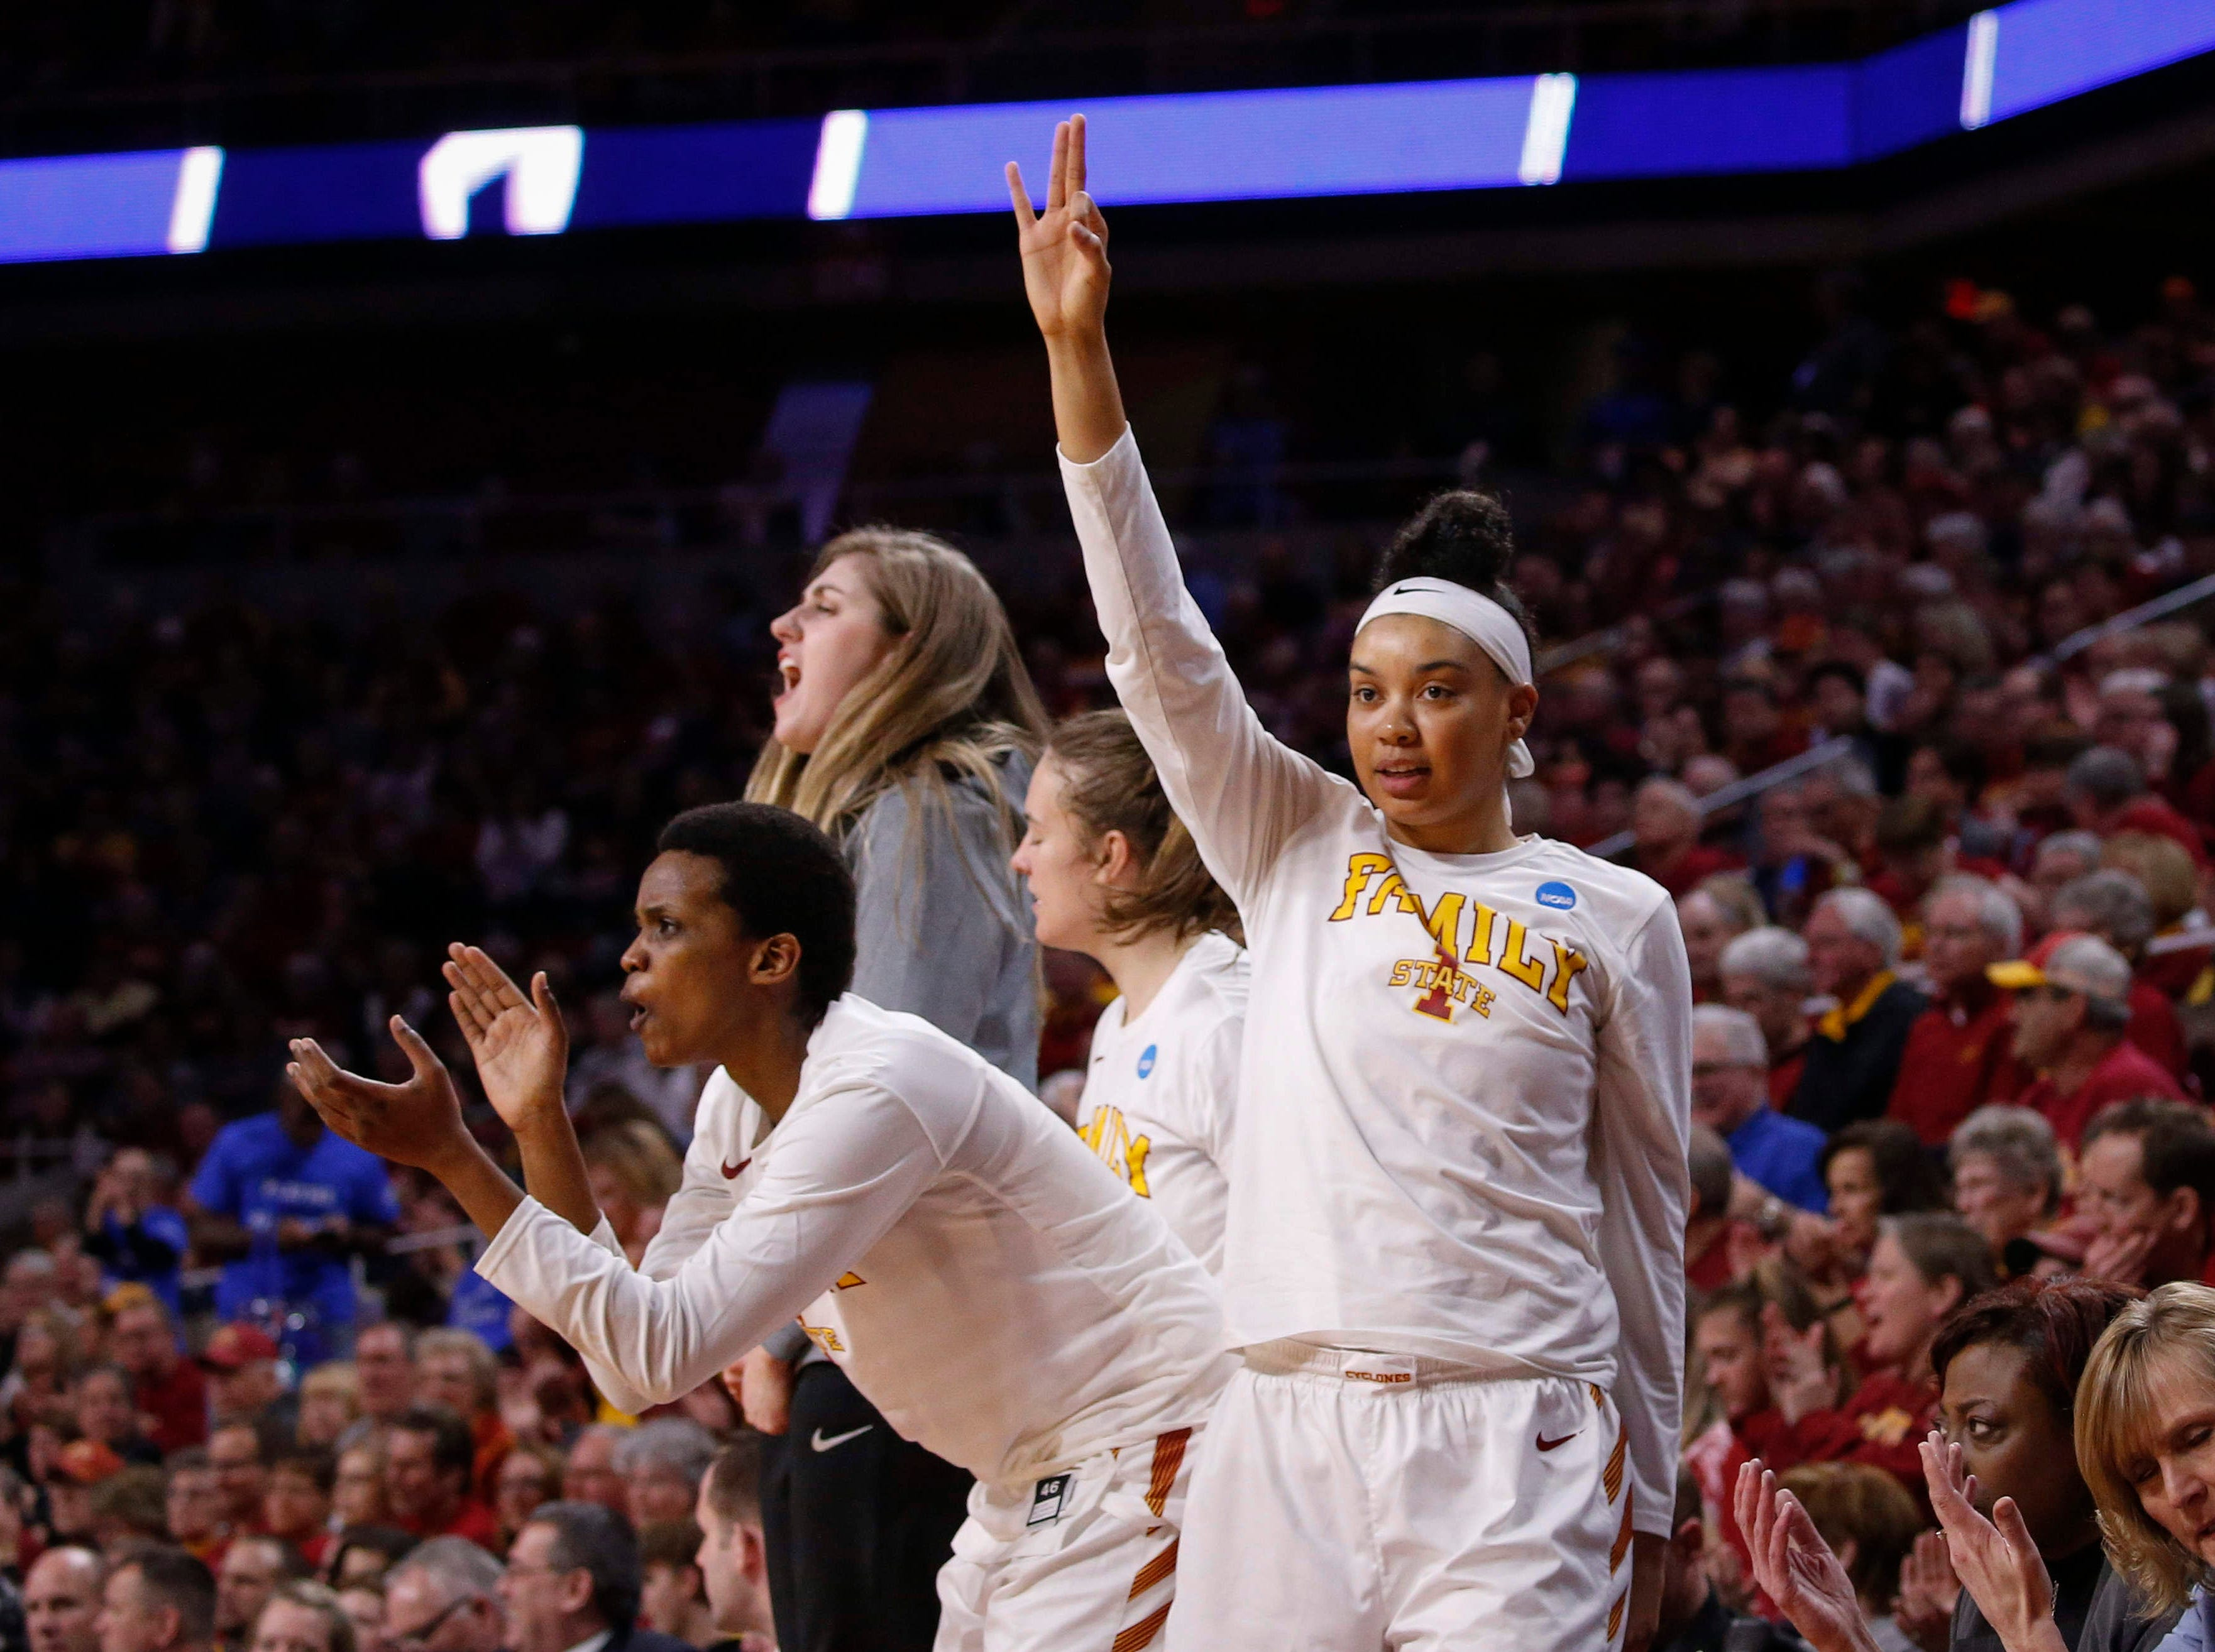 Members of the Iowa State women's basketball team cheer after teammate Bridget Carleton hit a three-pointer against New Mexico State on Saturday, March 23, 2019, at Hilton Coliseum in Ames.